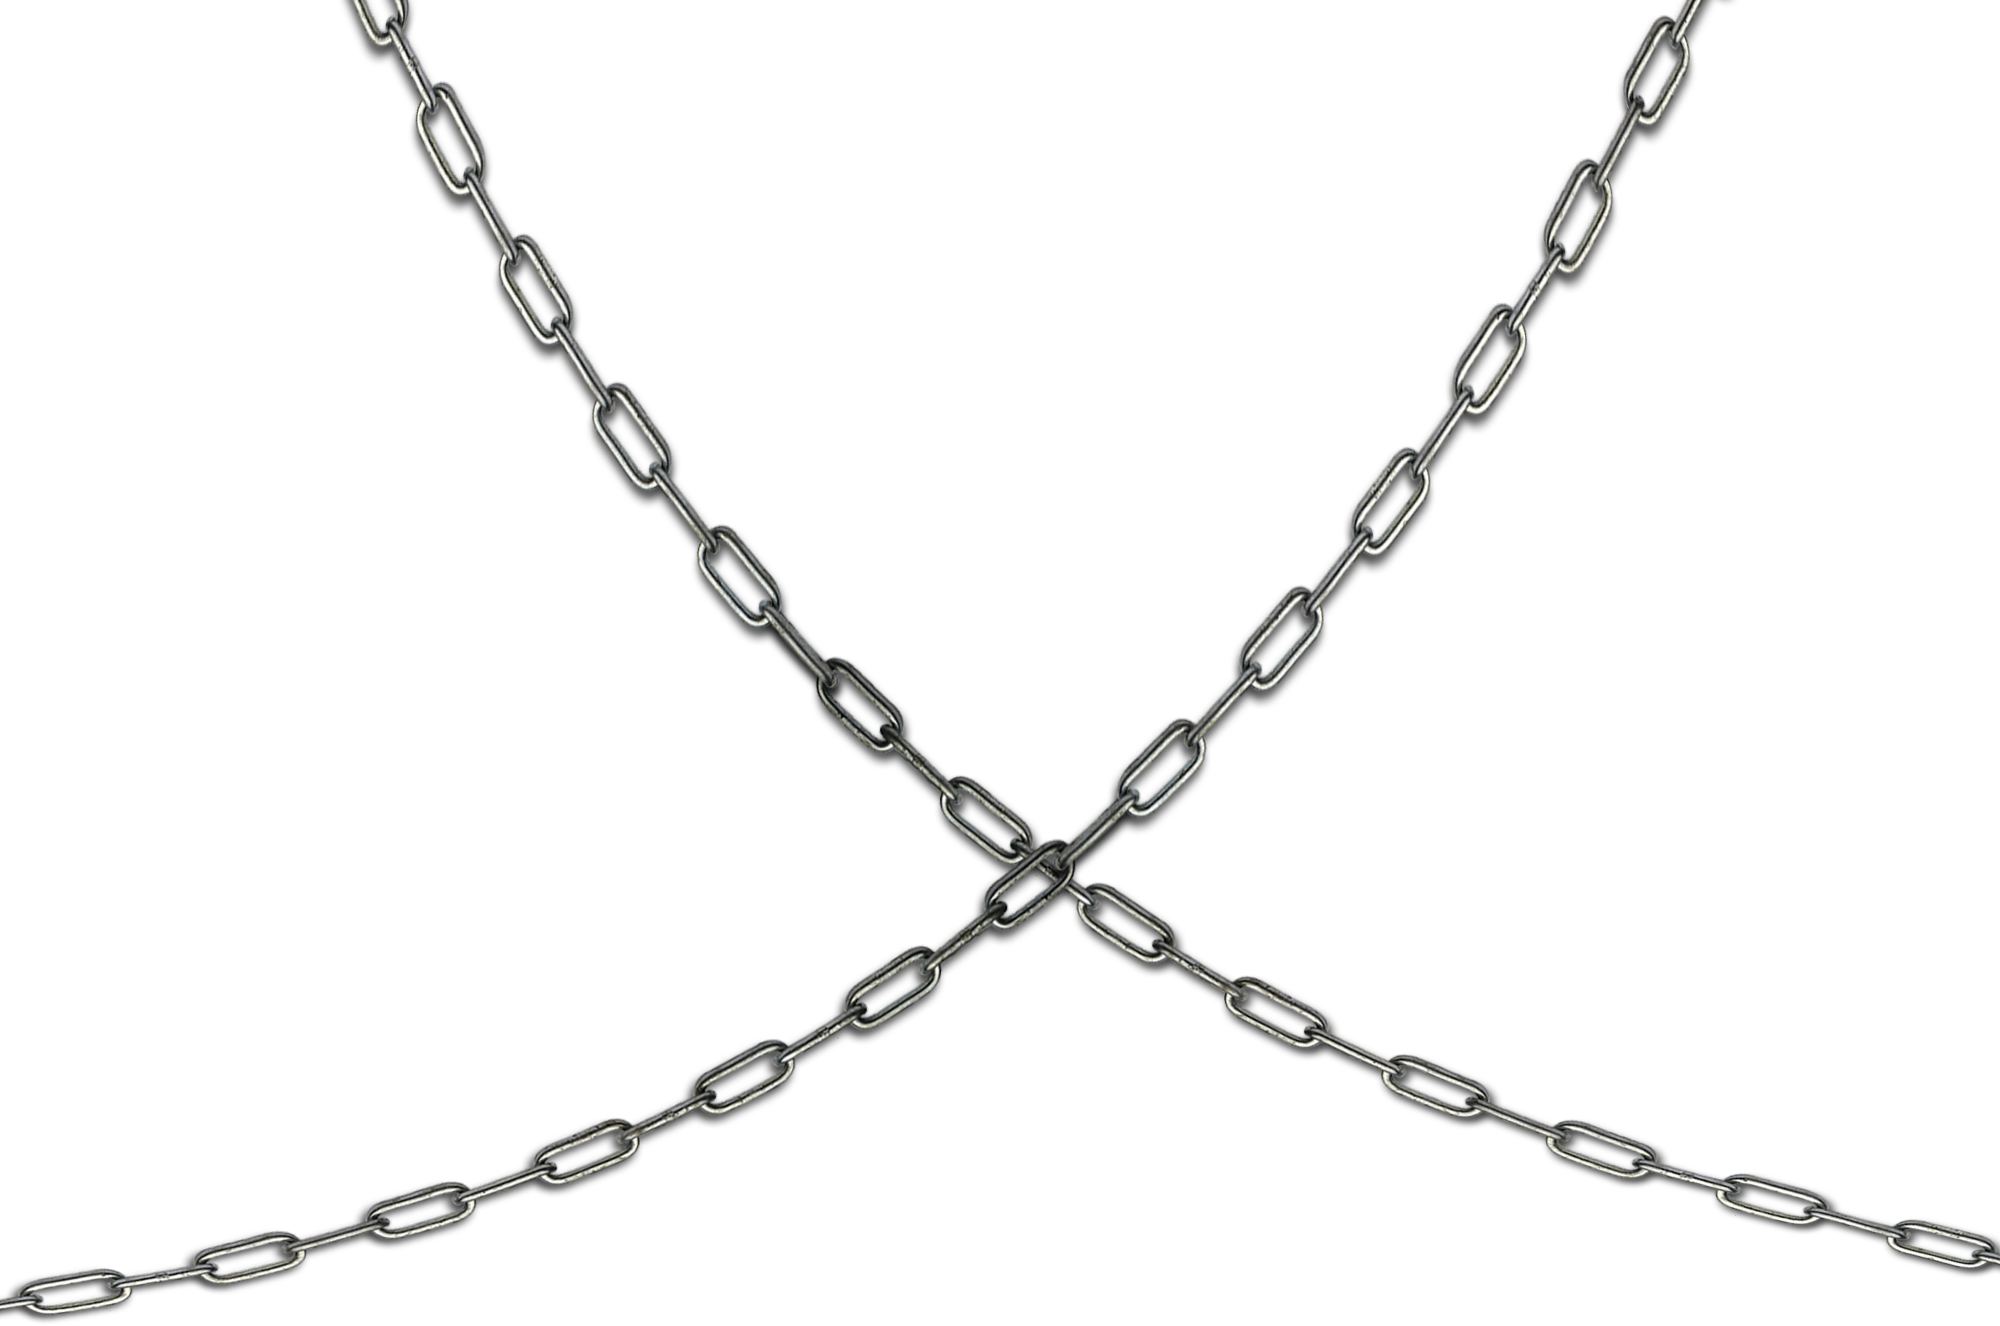 Transparent Silver Chain PNG Image